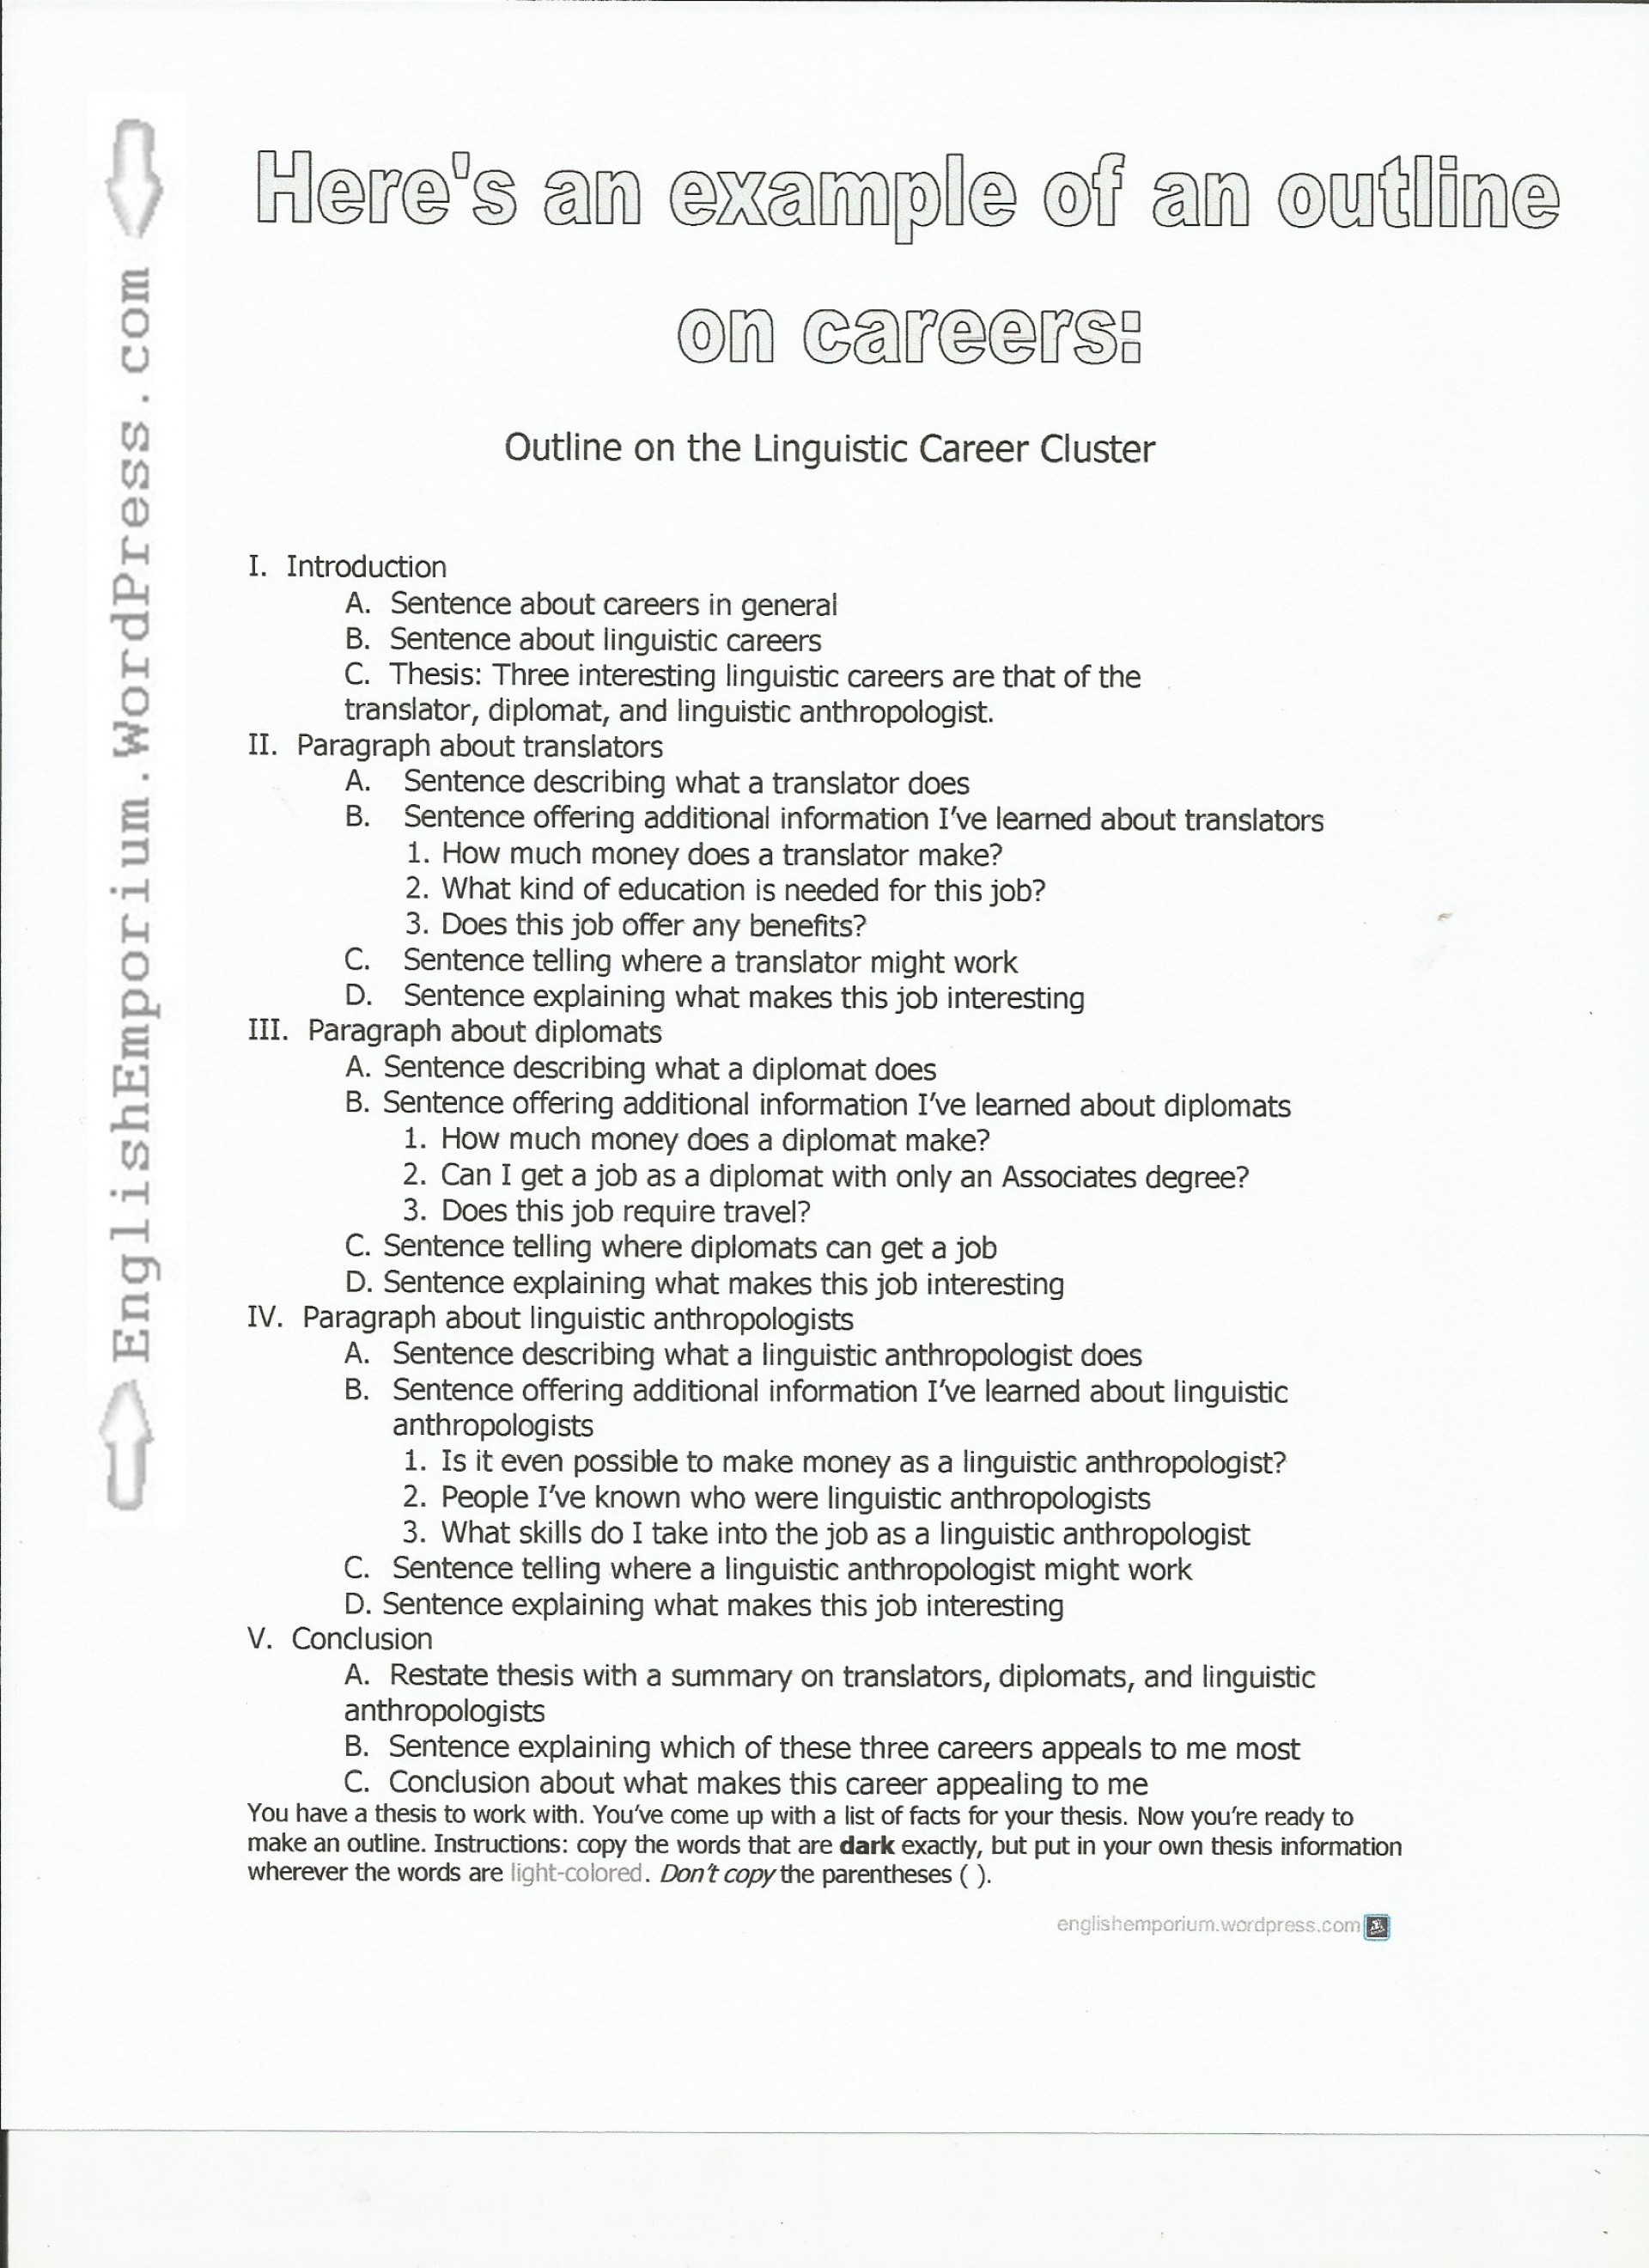 020 Research Paper Outline On Careers Pg Outlines For Top A Bullying Sample Apa Format 1920